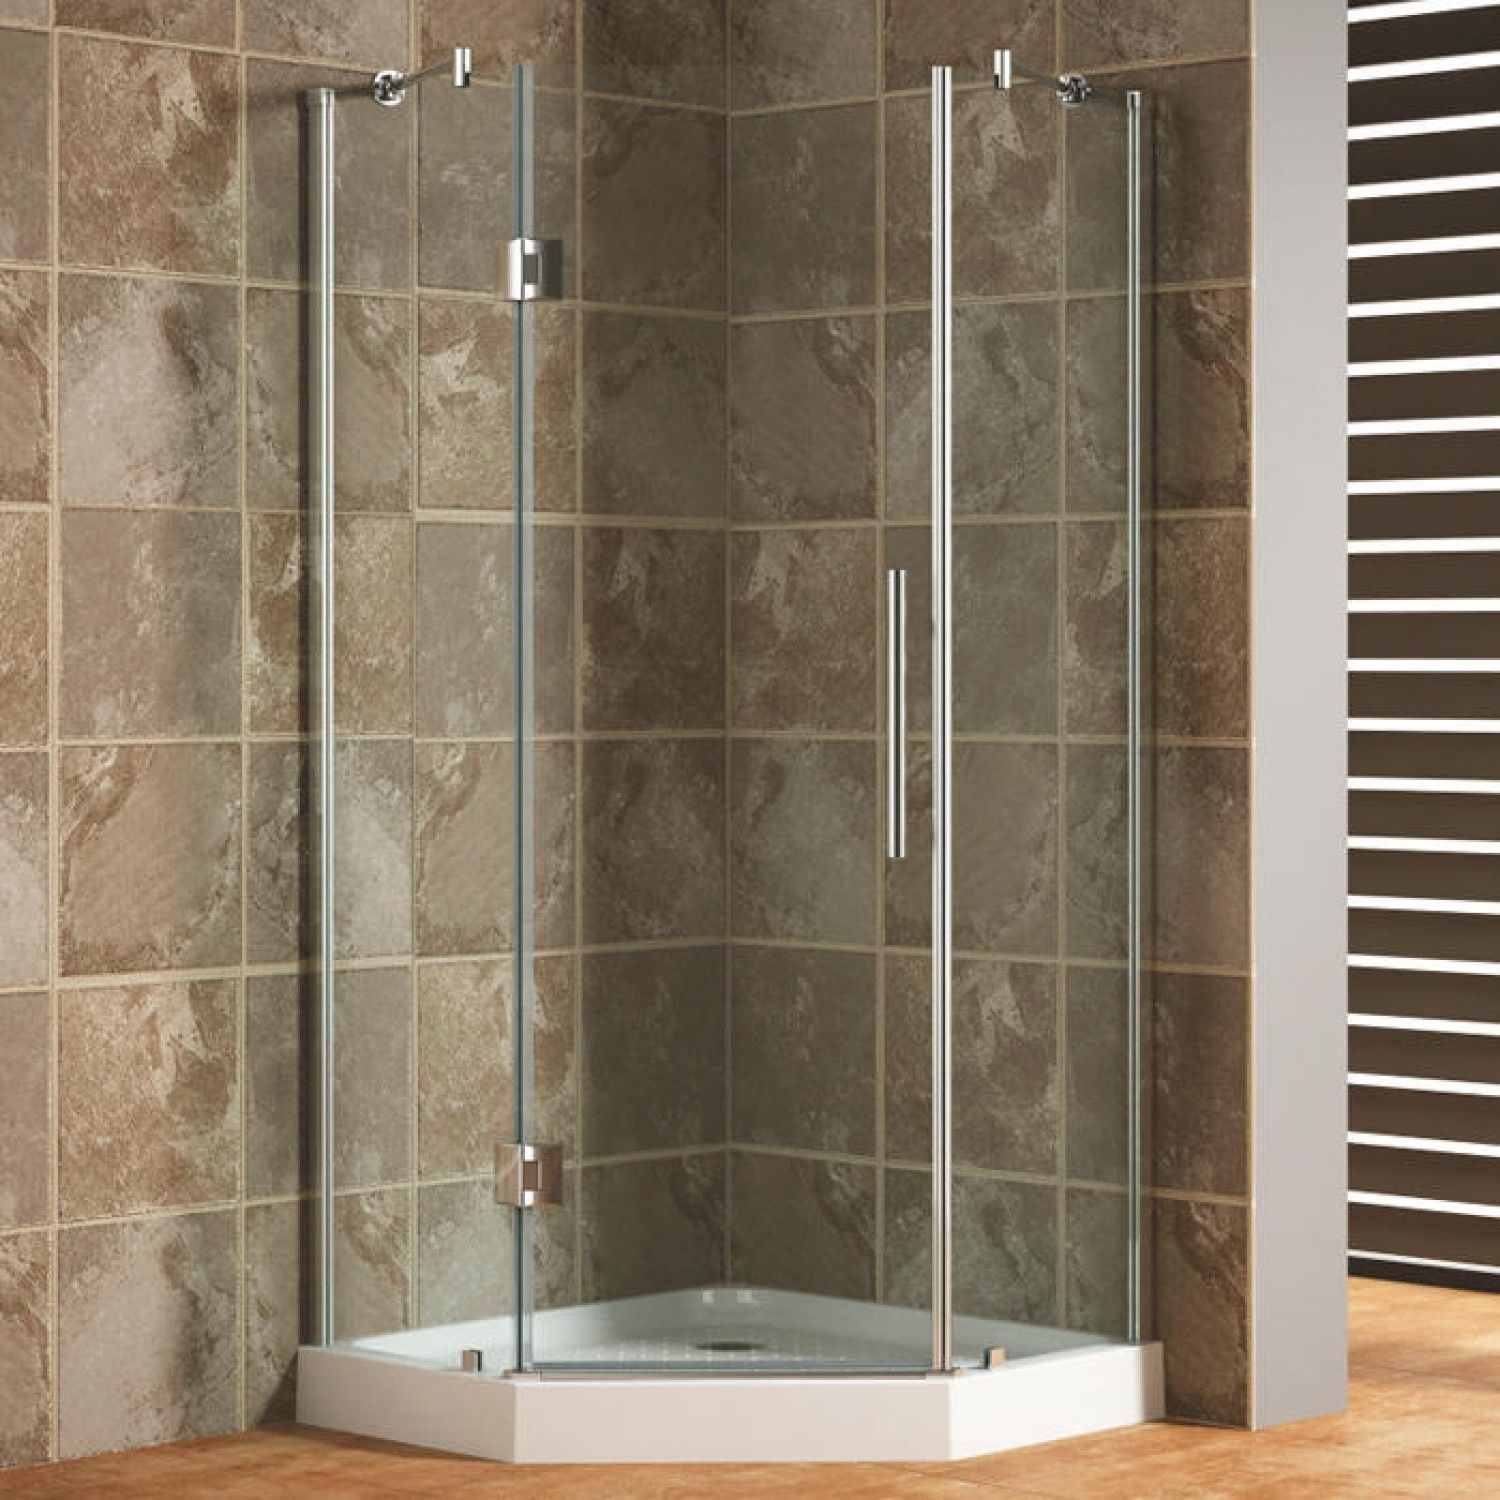 Bathroom P Shaped Corner Shower Enclosure With Wall Mounted Gallery 13 Images Of The Best Stall For Minimalist Decoration. lowes bathroom vanities. remodel bathroom. bathroom fans. bathroom furniture.